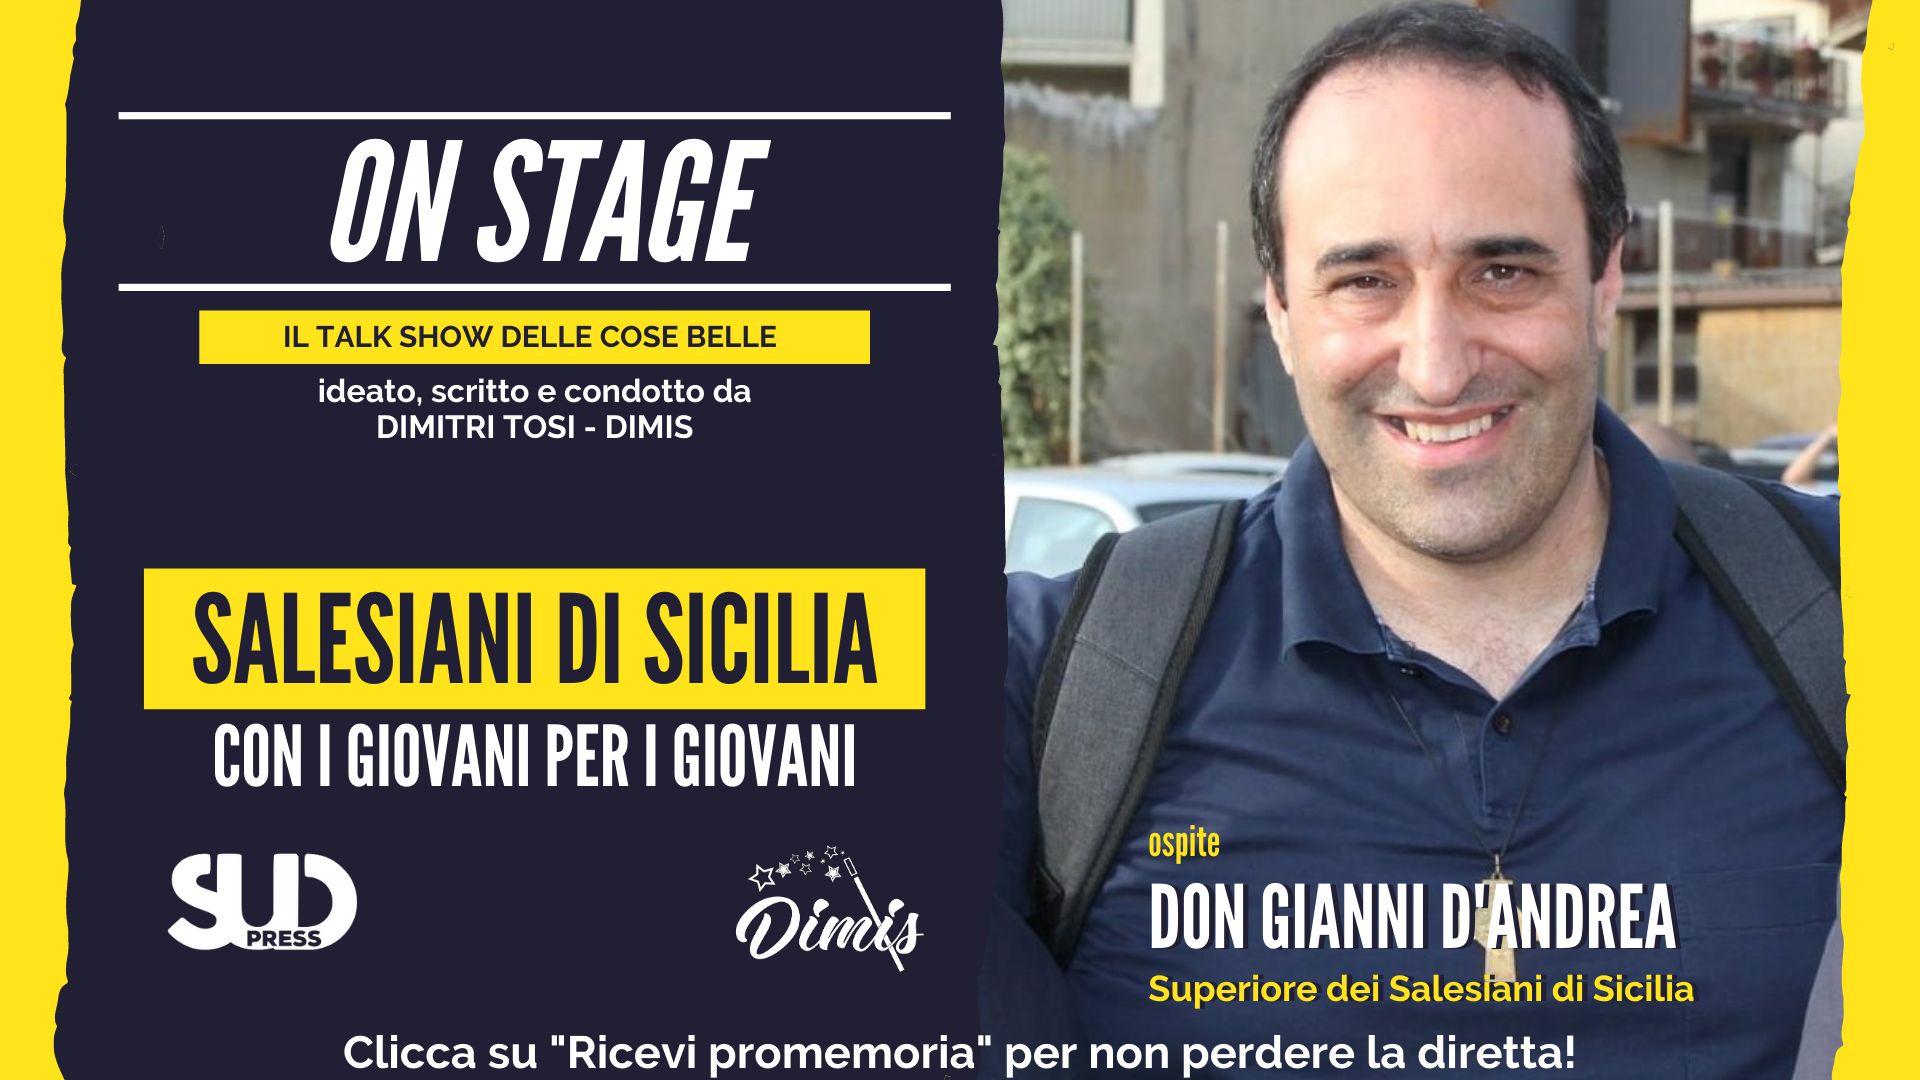 On Stage torna live oggi alle 18:00